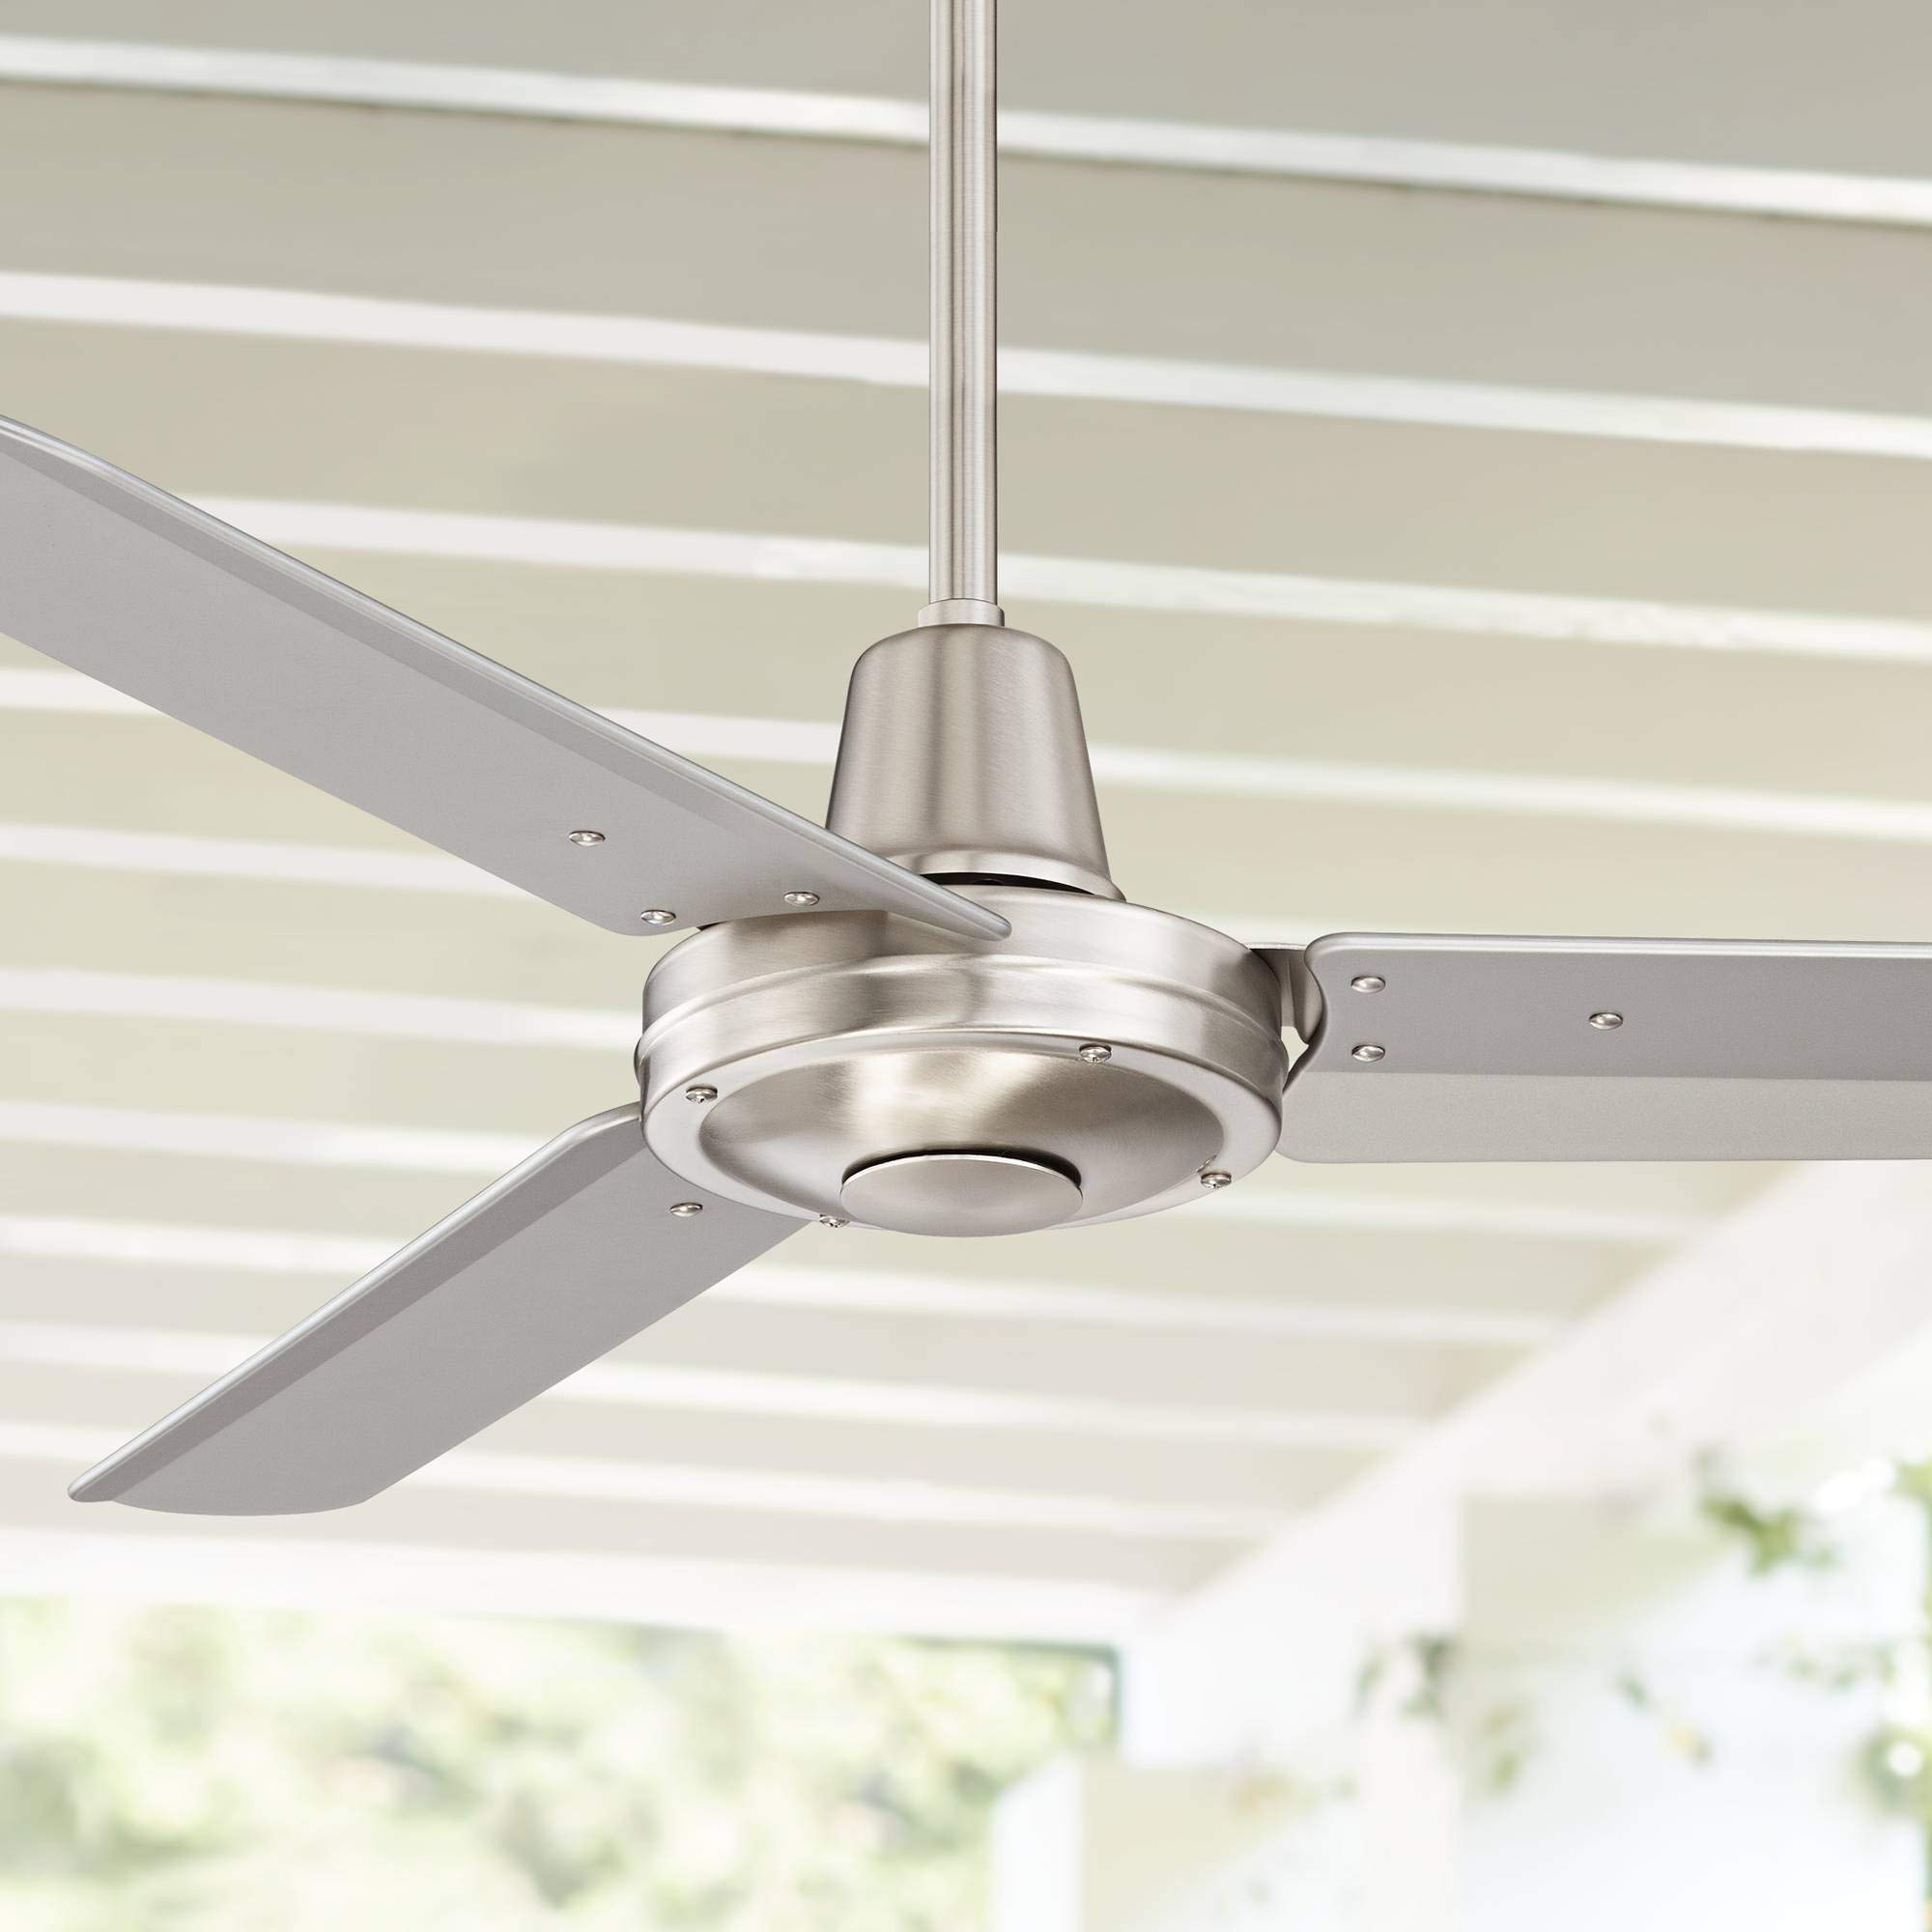 44'' Plaza Modern Industrial Outdoor Ceiling Fan with Remote Control Brushed Nickel Damp Rated for Patio Porch - Casa Vieja